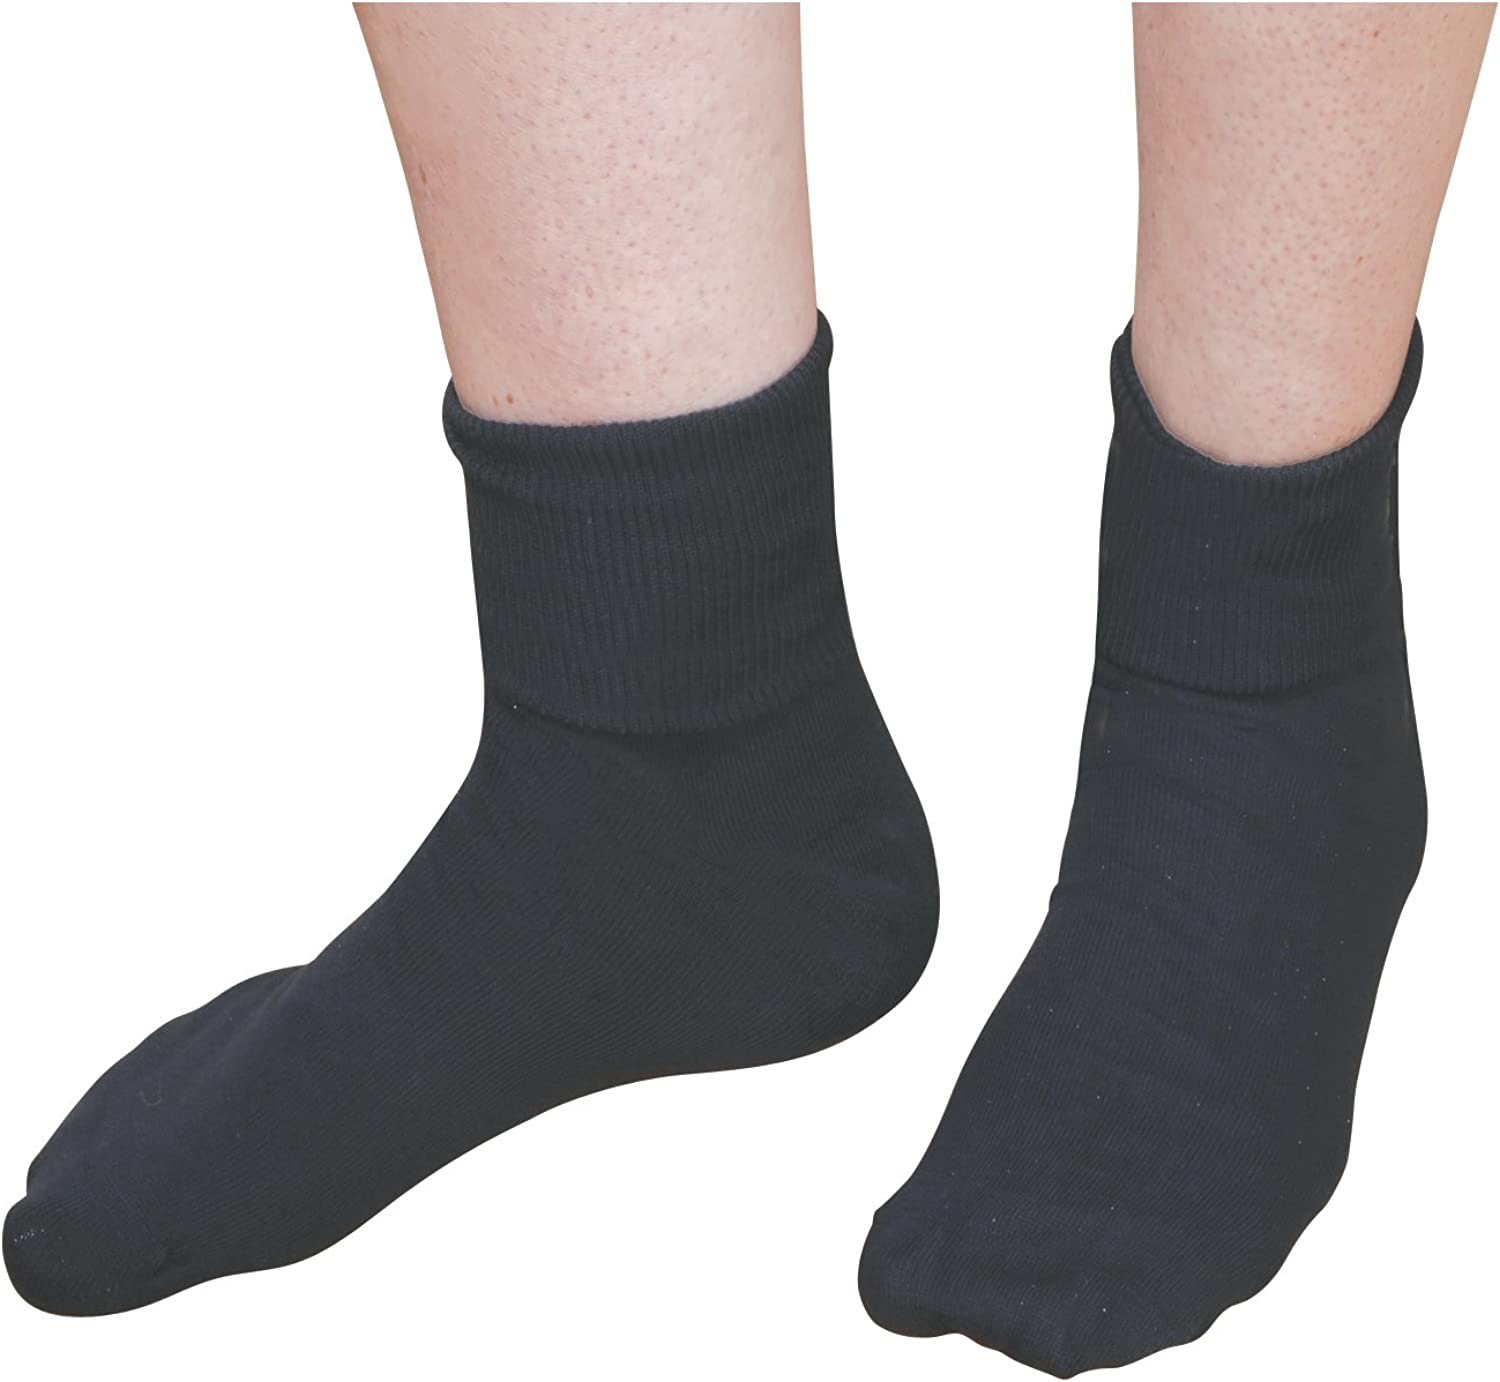 100/% Cotton Buster Brown Women's Low Cut Ankle Socks  Elastic Free 3 Pair